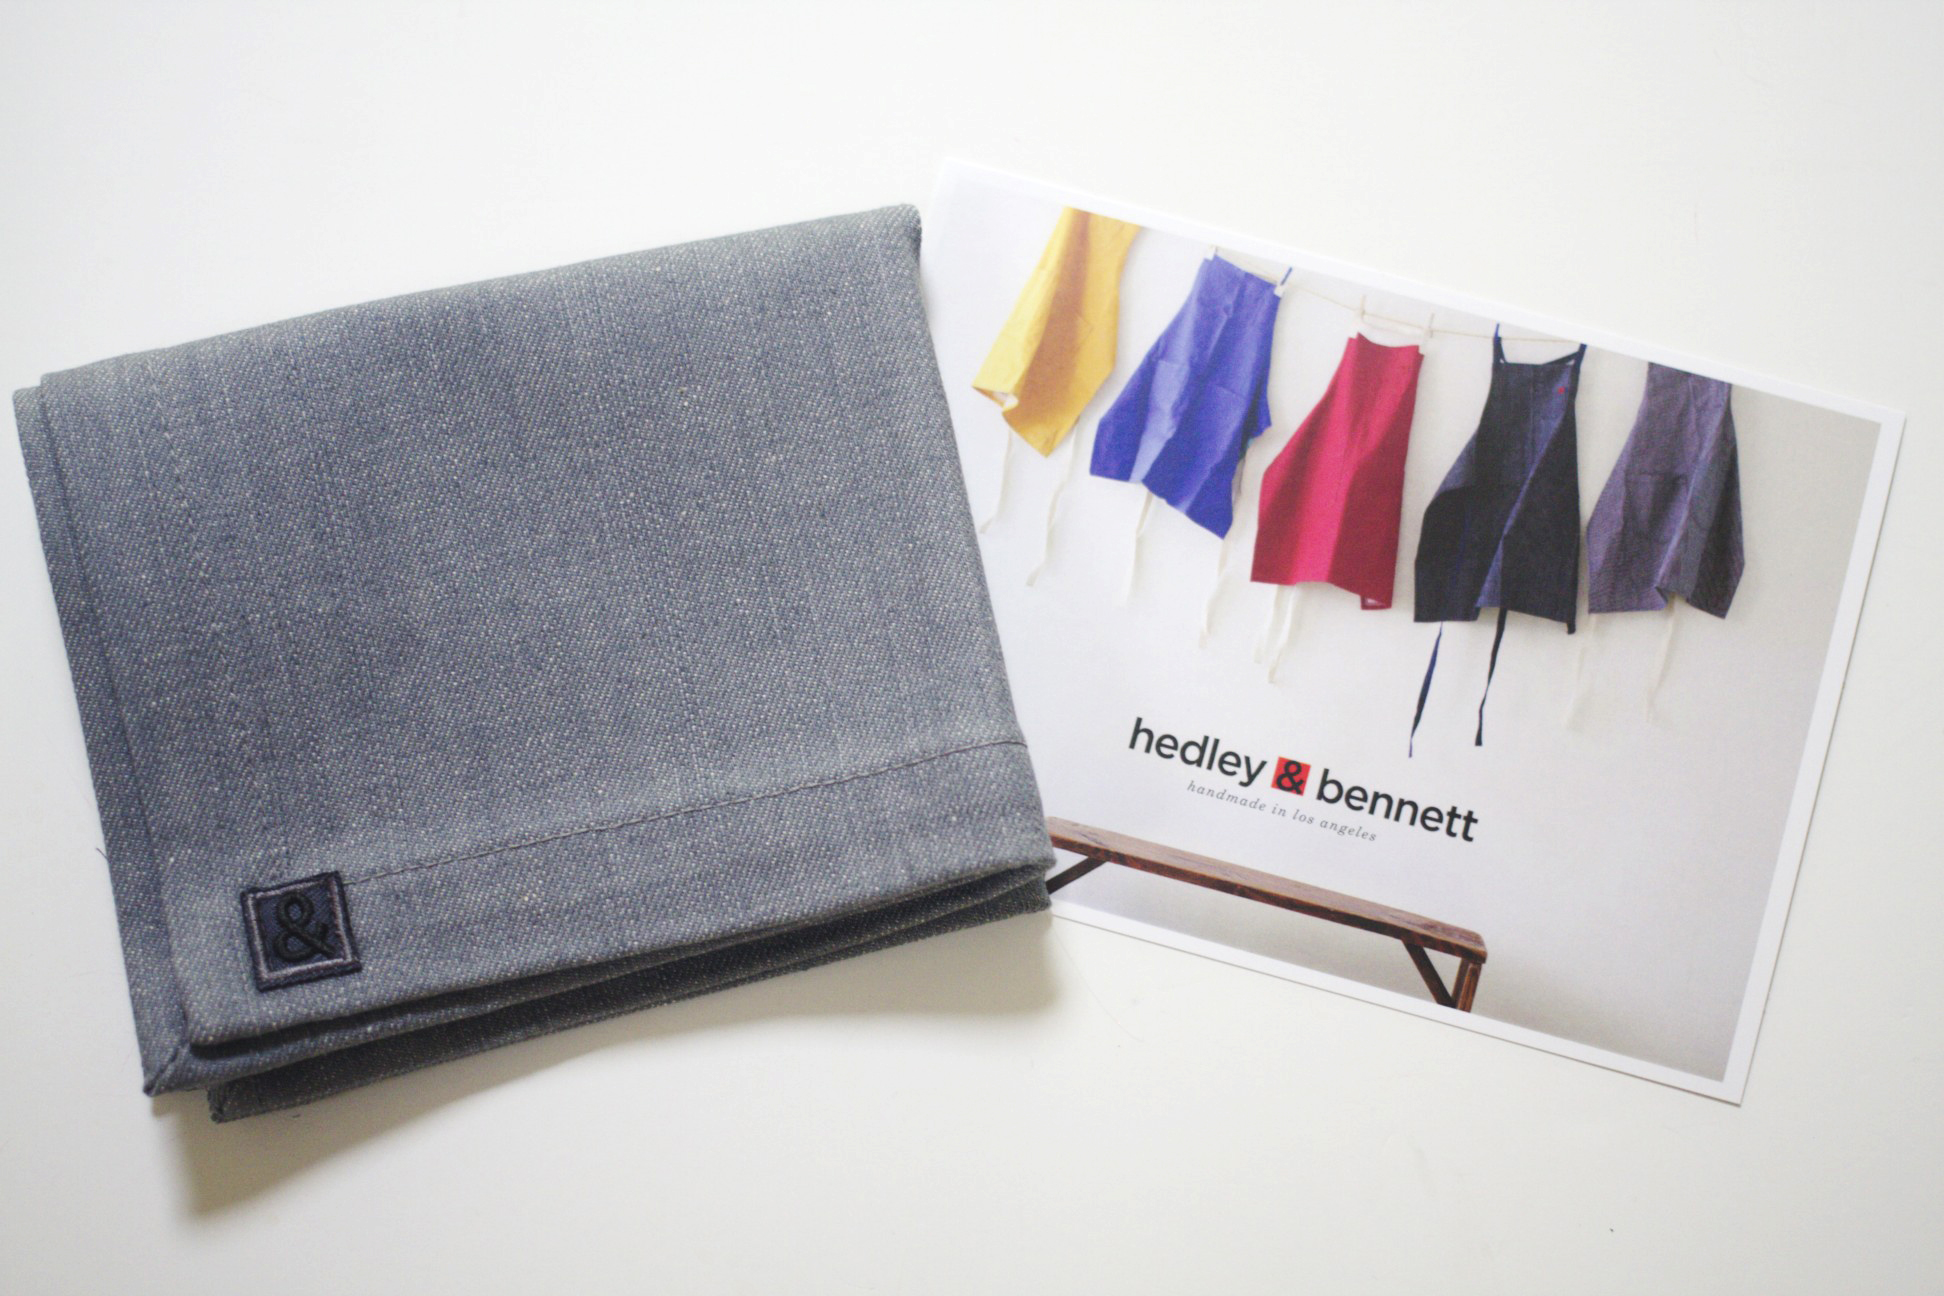 Hedley & Bennett  gave linen napkins from their beautiful Homewares collection.